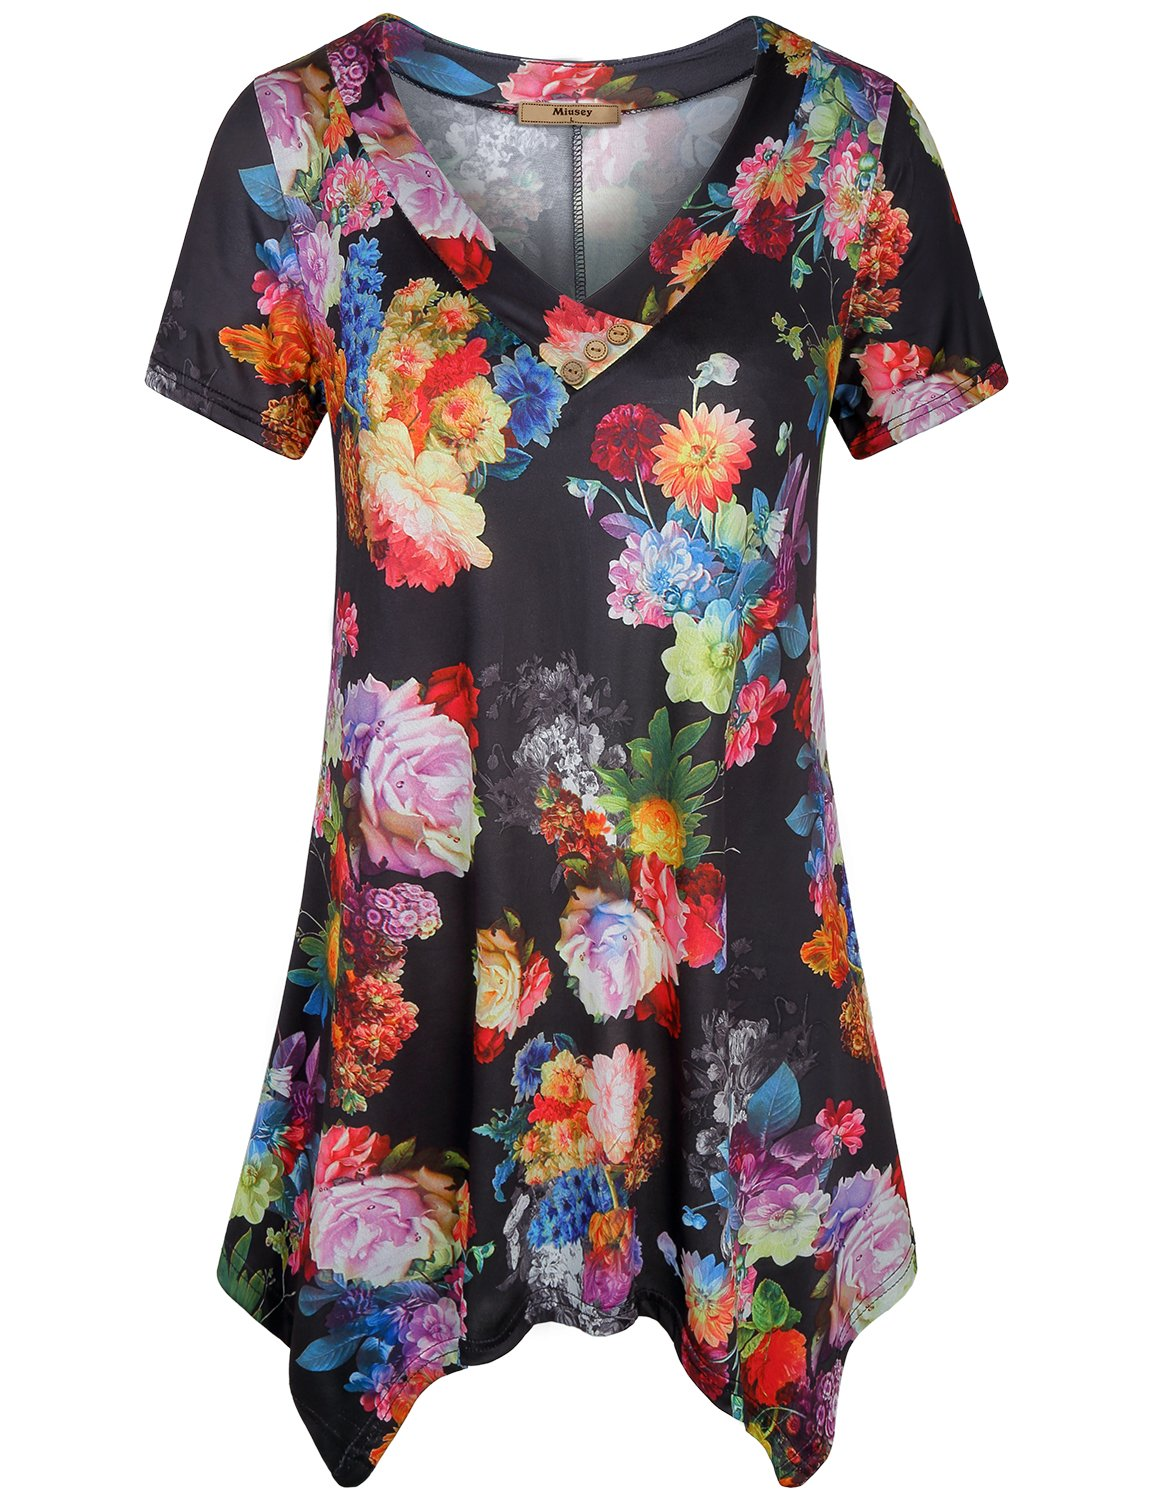 Miusey Knit Tops for Women Ladies Sexy V Neck Short Sleeve Handkerchief Hem Tunic Dresses Stretchy Cute Floral Print Elegant A Line Shirts Working Wear Black L